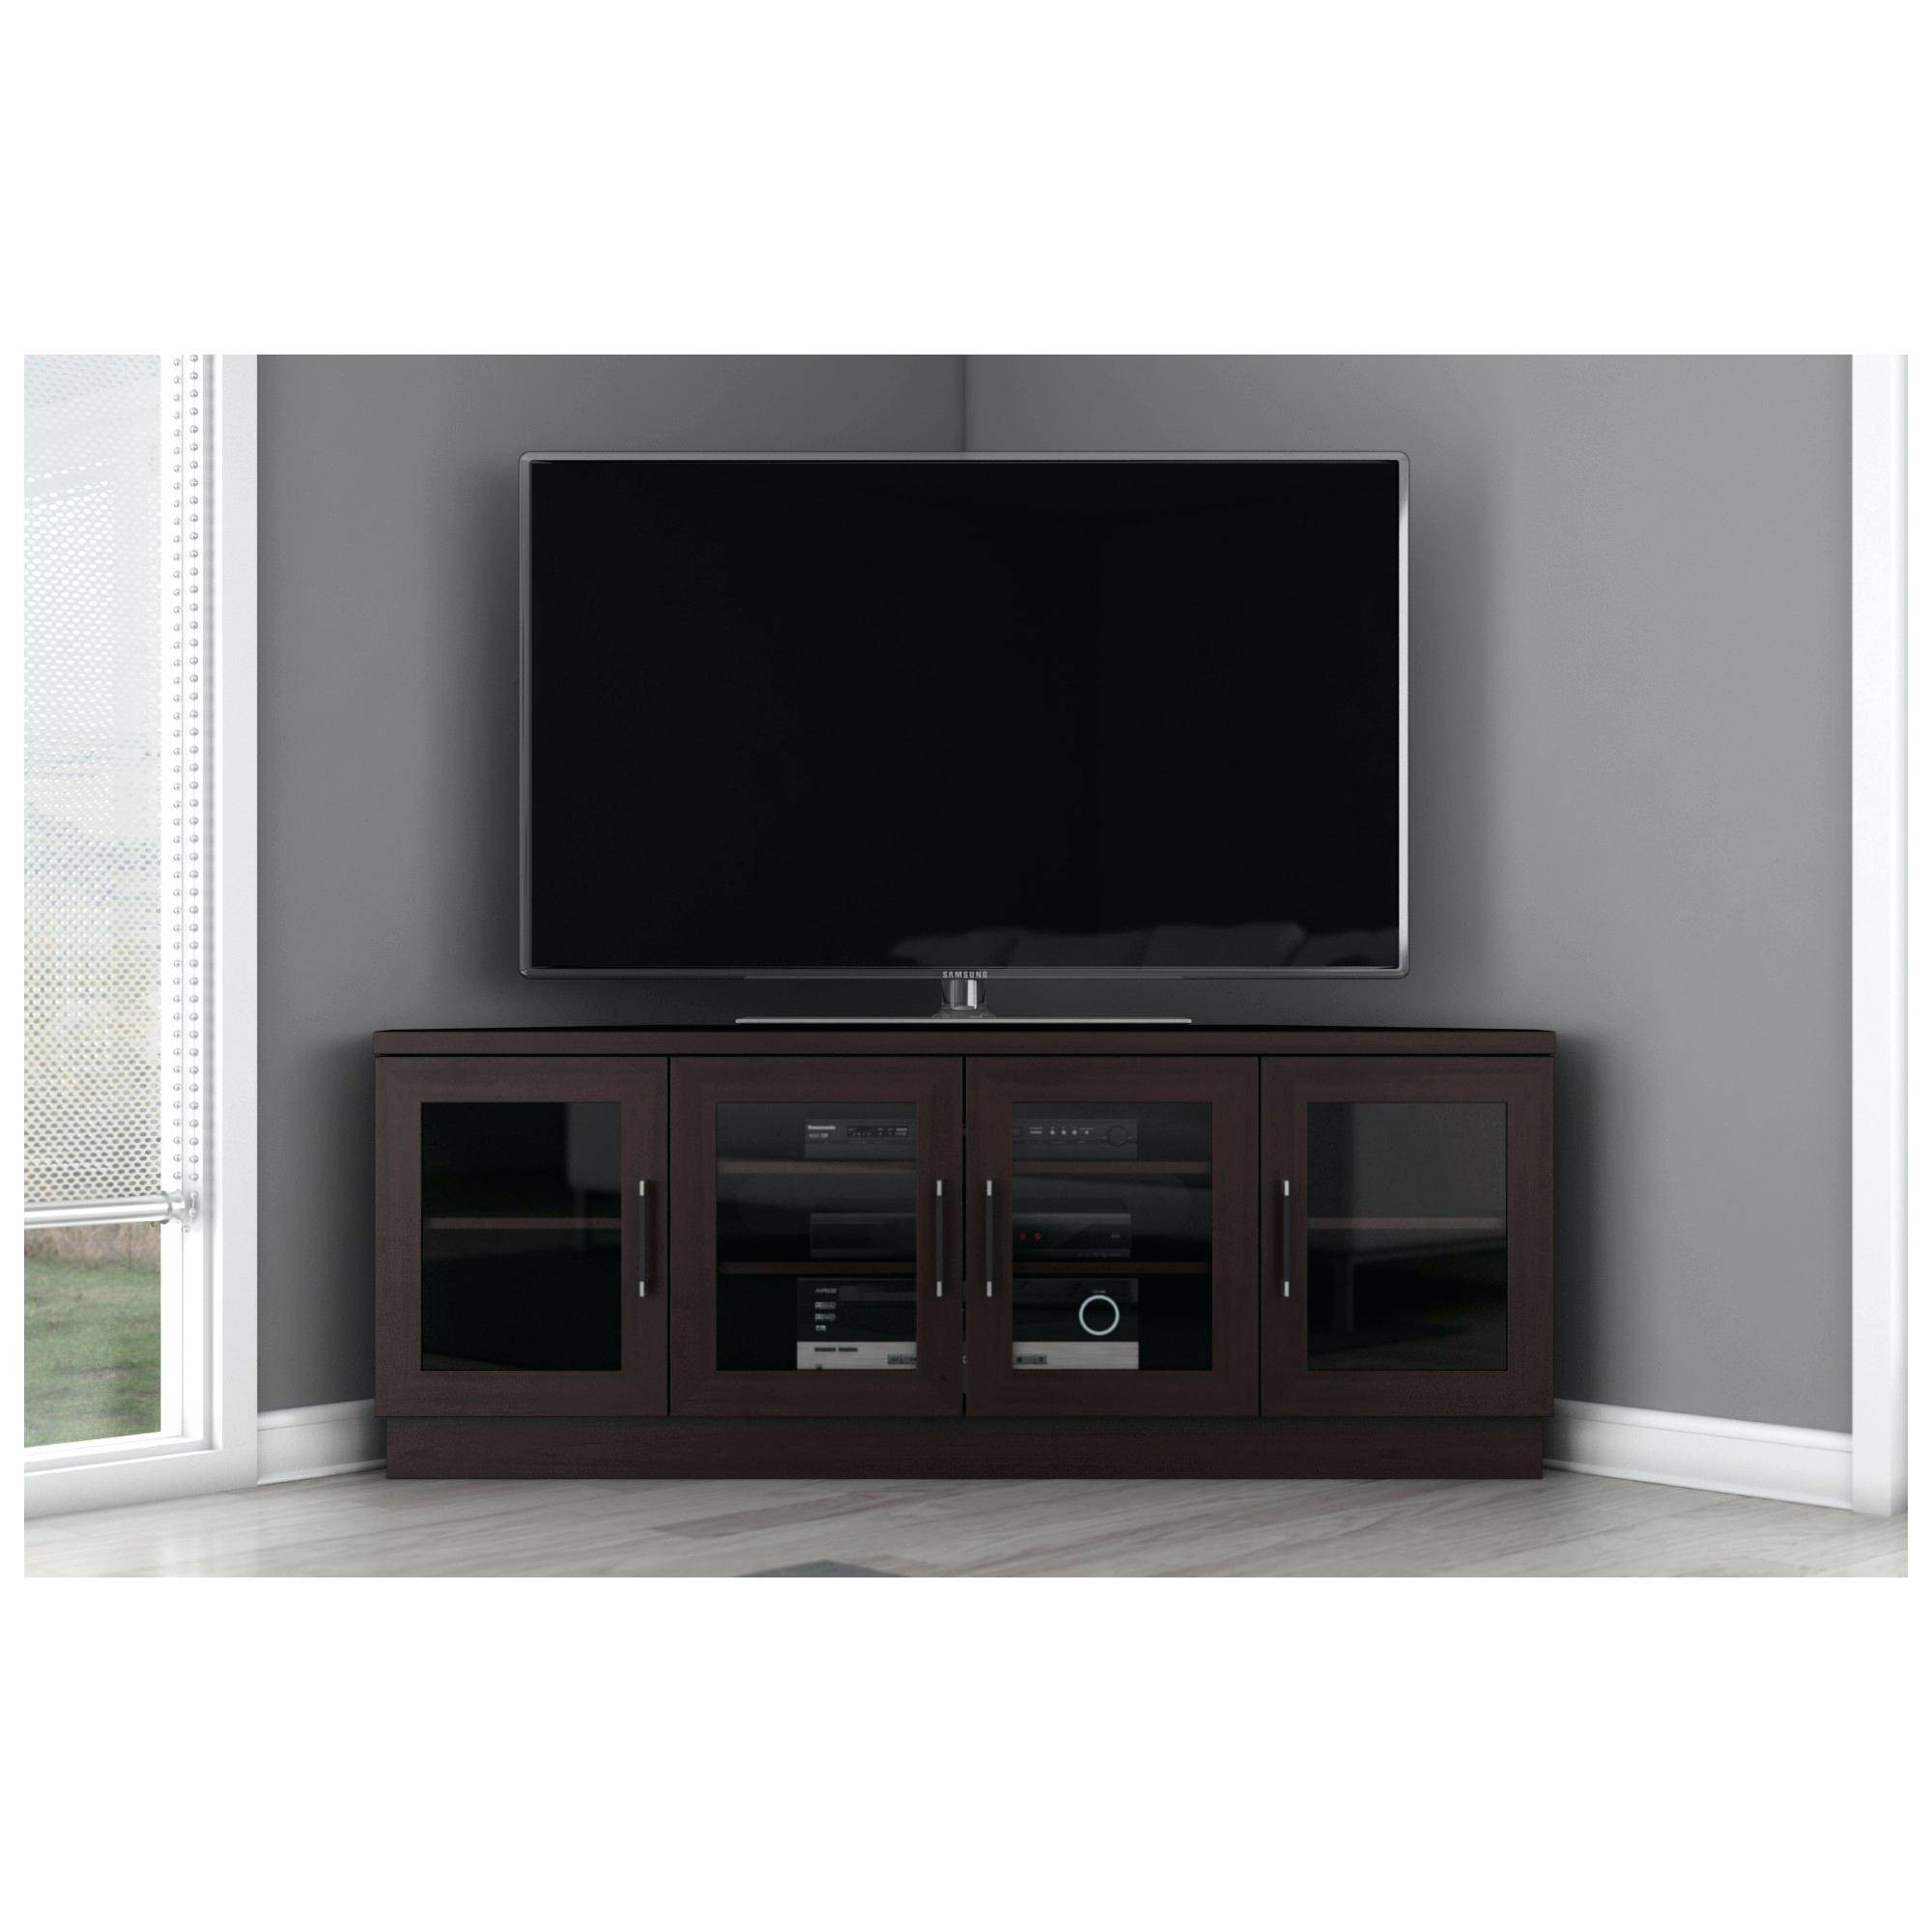 Tv Stand : Corner Tv Stand Corner Tv Stand Wonderful Corner Tv with regard to 24 Inch Corner Tv Stands (Image 11 of 15)